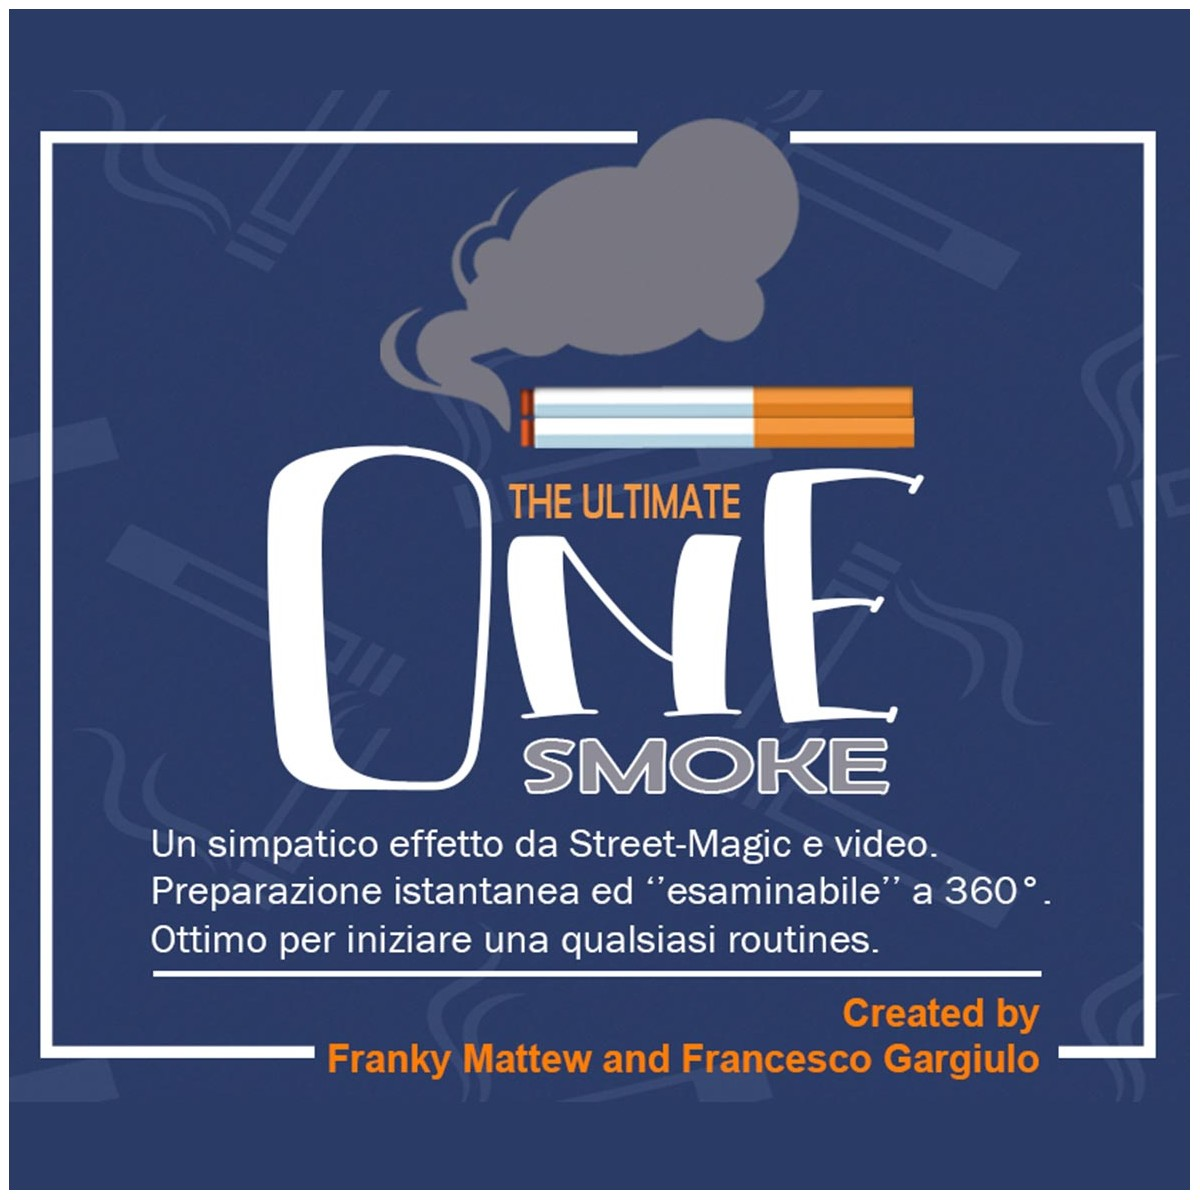 The Ultimate One Smoke by Franky Mattew and F.Gargiulo